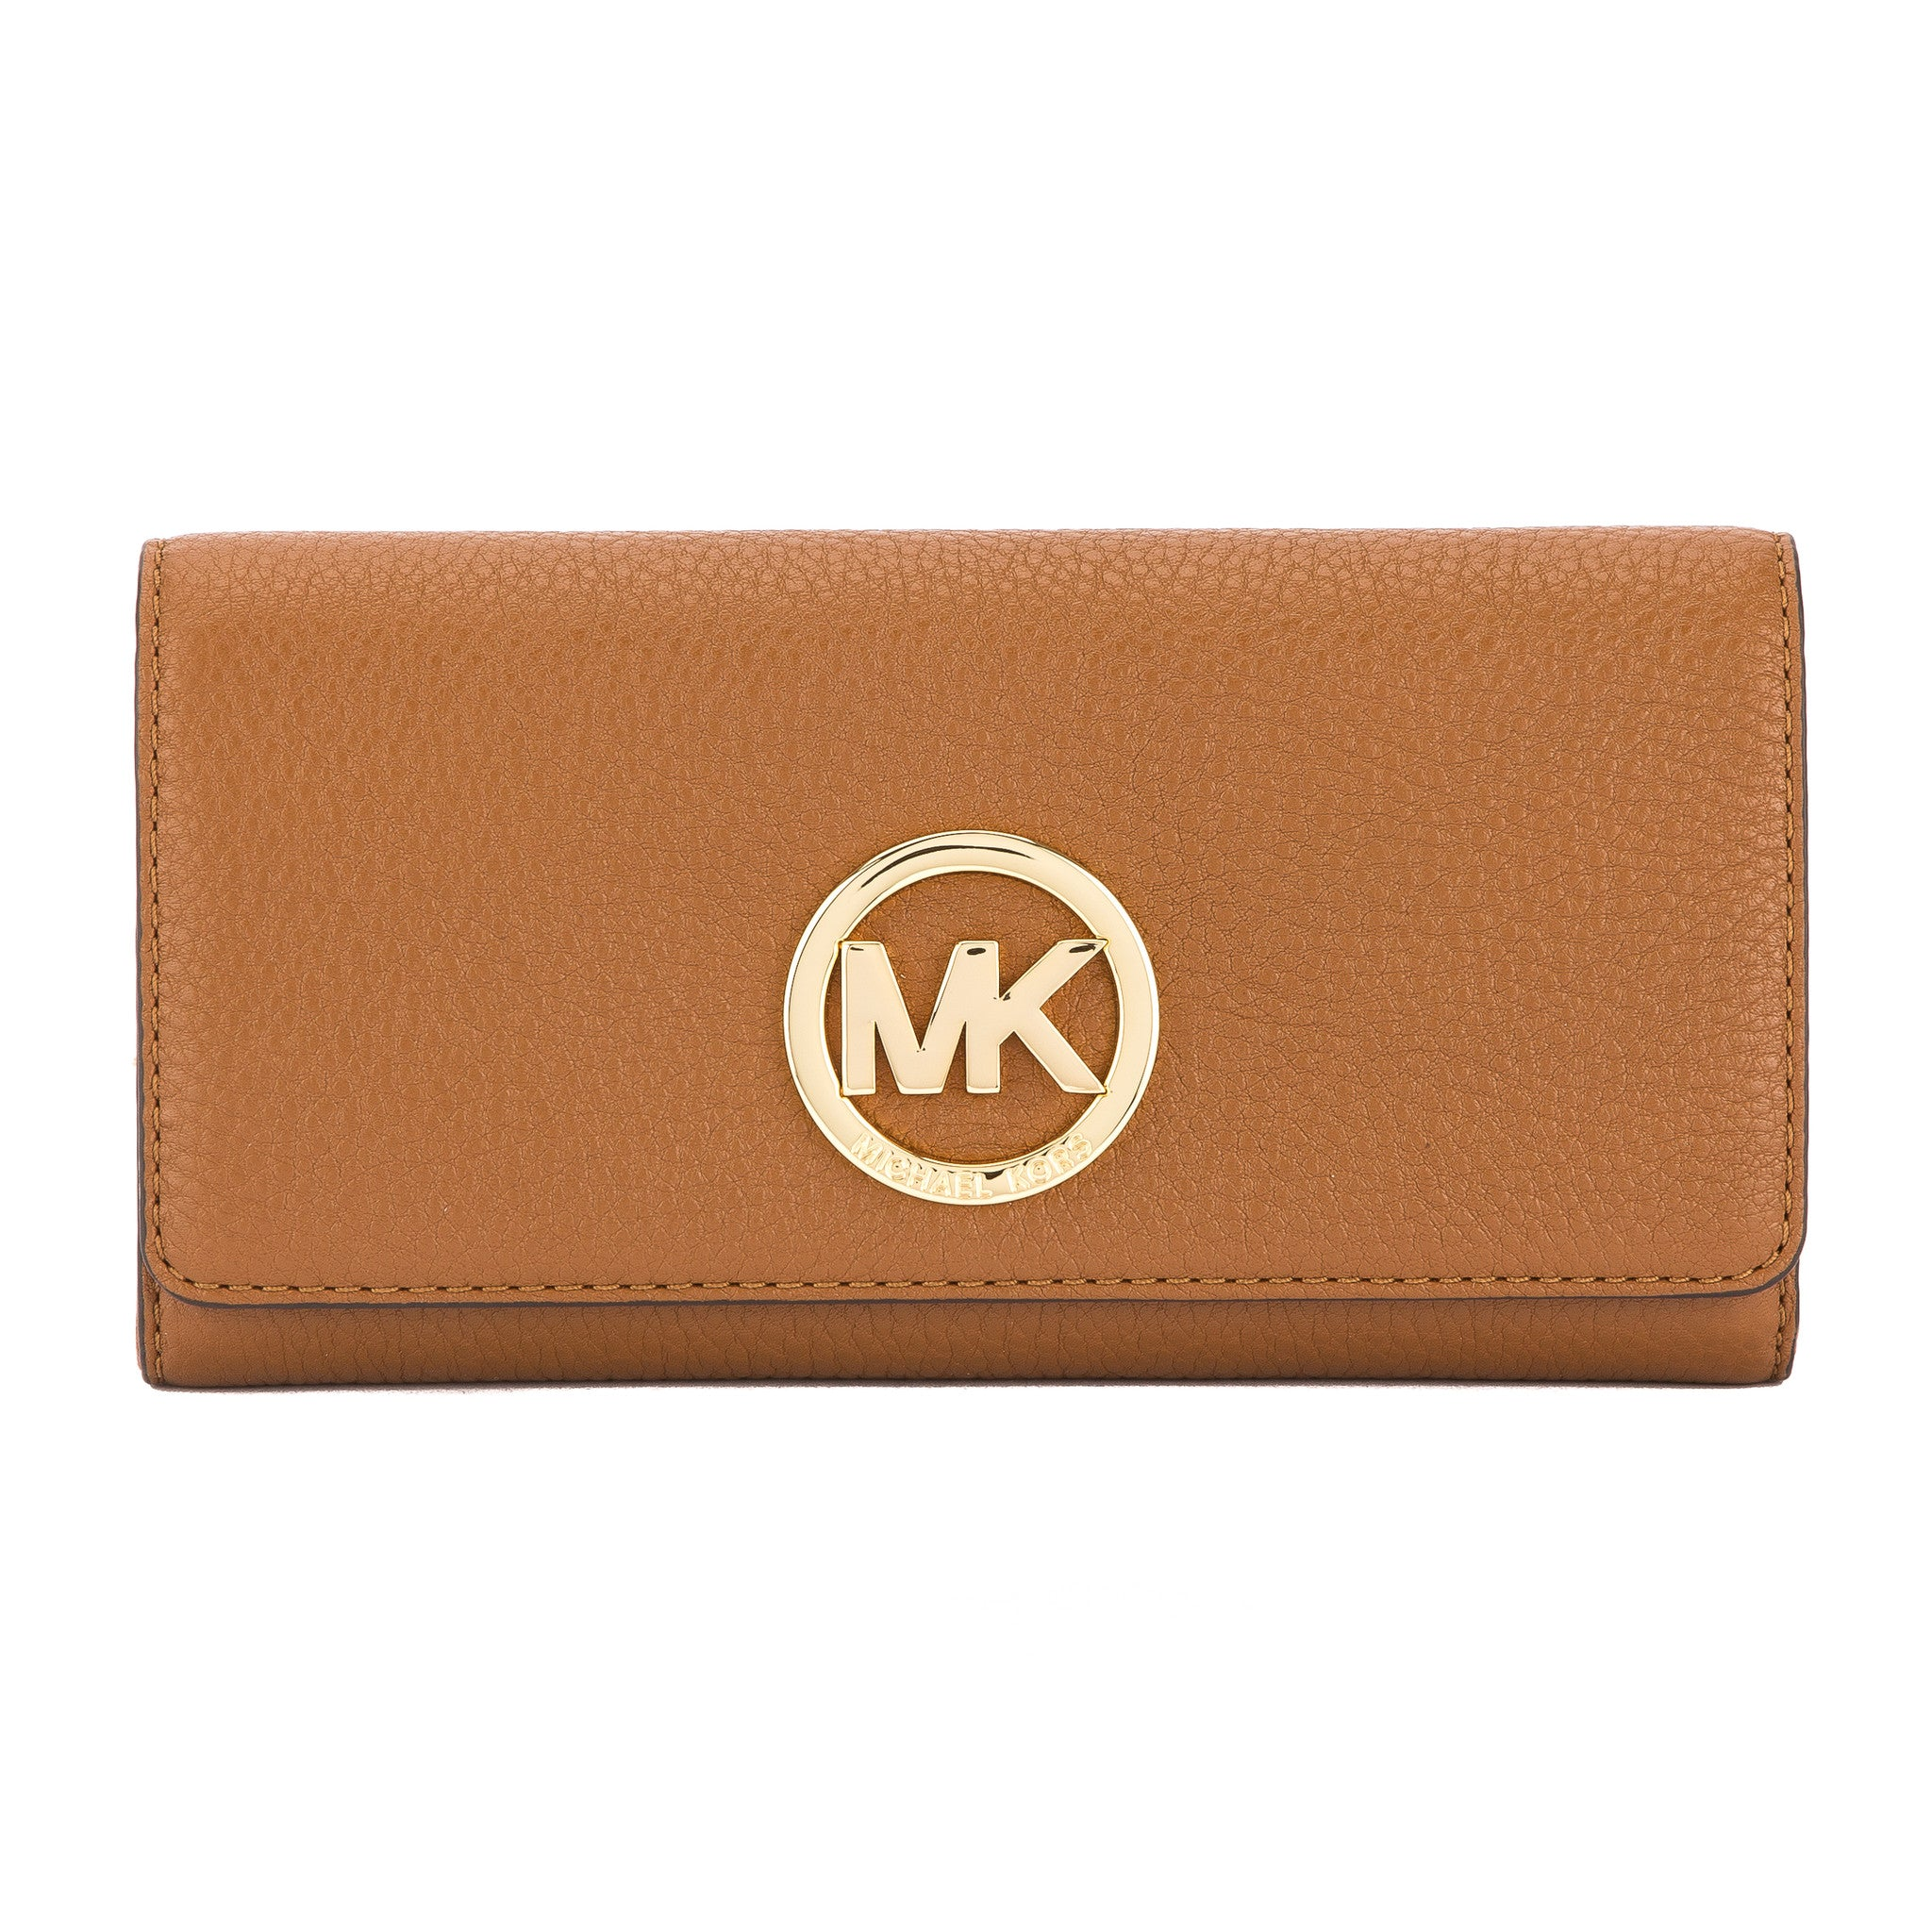 80aada1107ce Michael Kors Luggage Venus Leather Fulton Carryall Wallet (New with ...